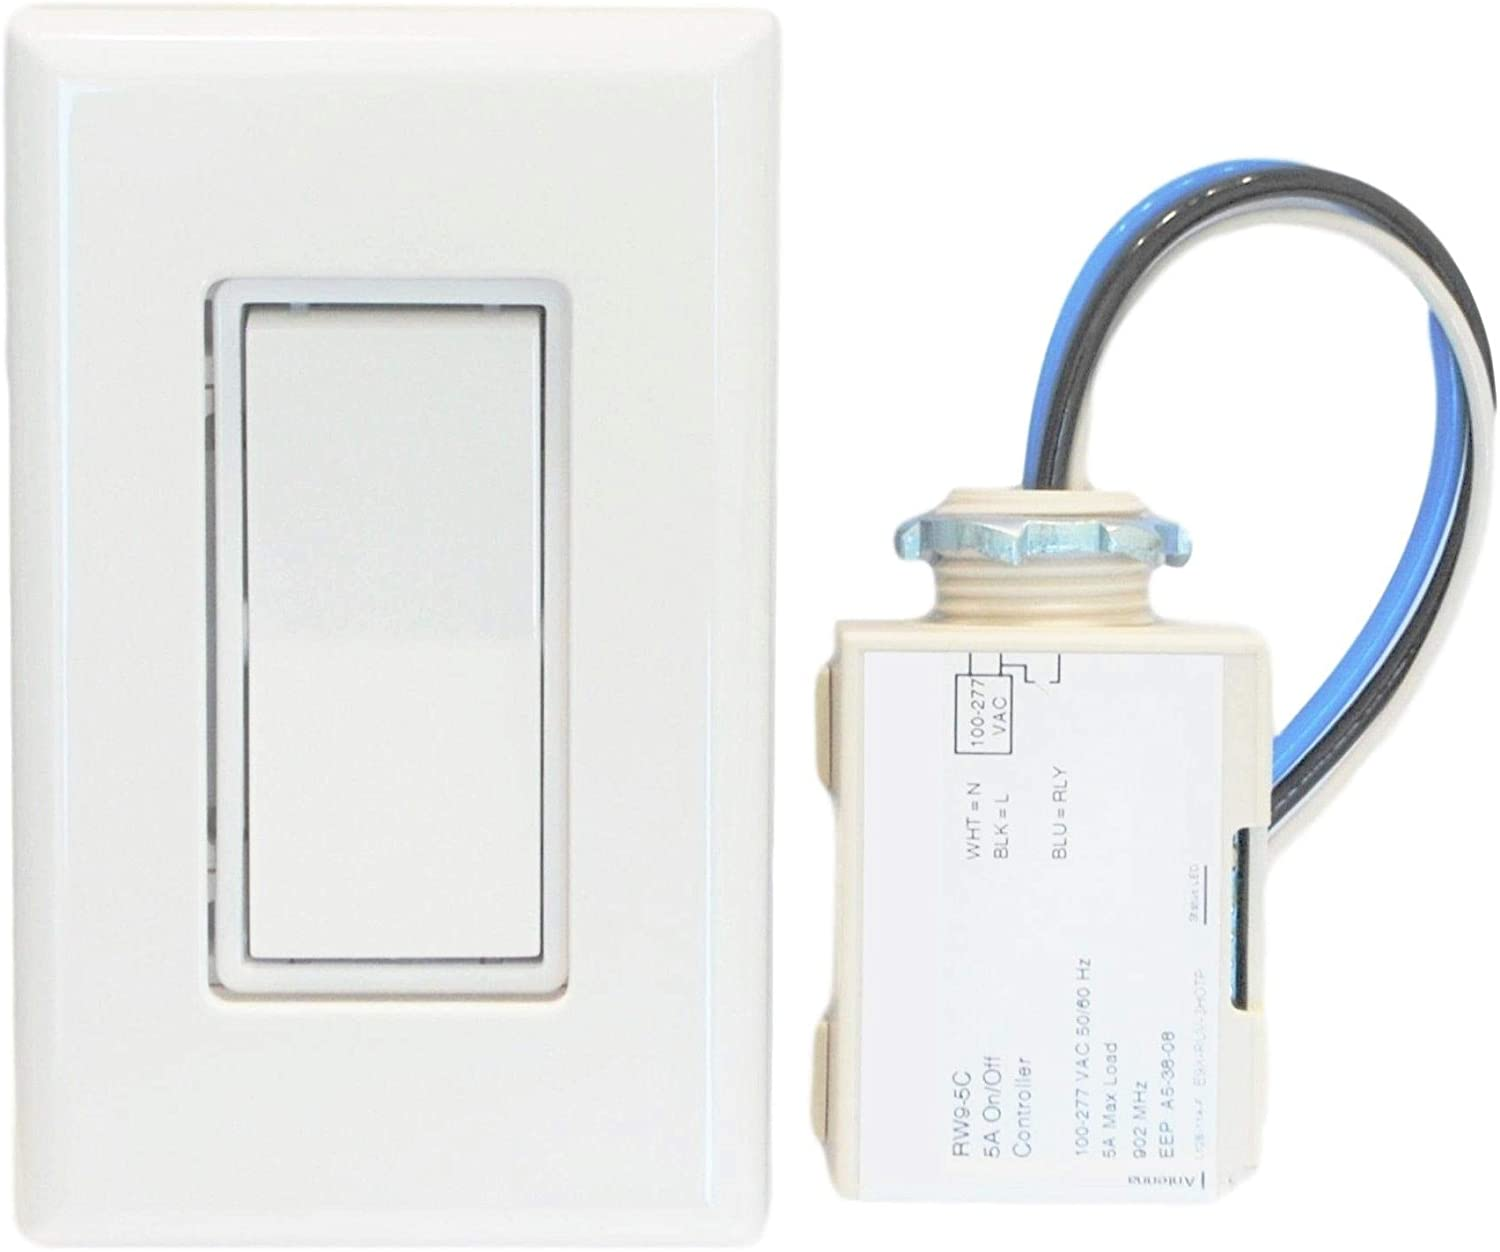 Basic Wireless Light Switch Kit Wall Light Switches Amazon Com